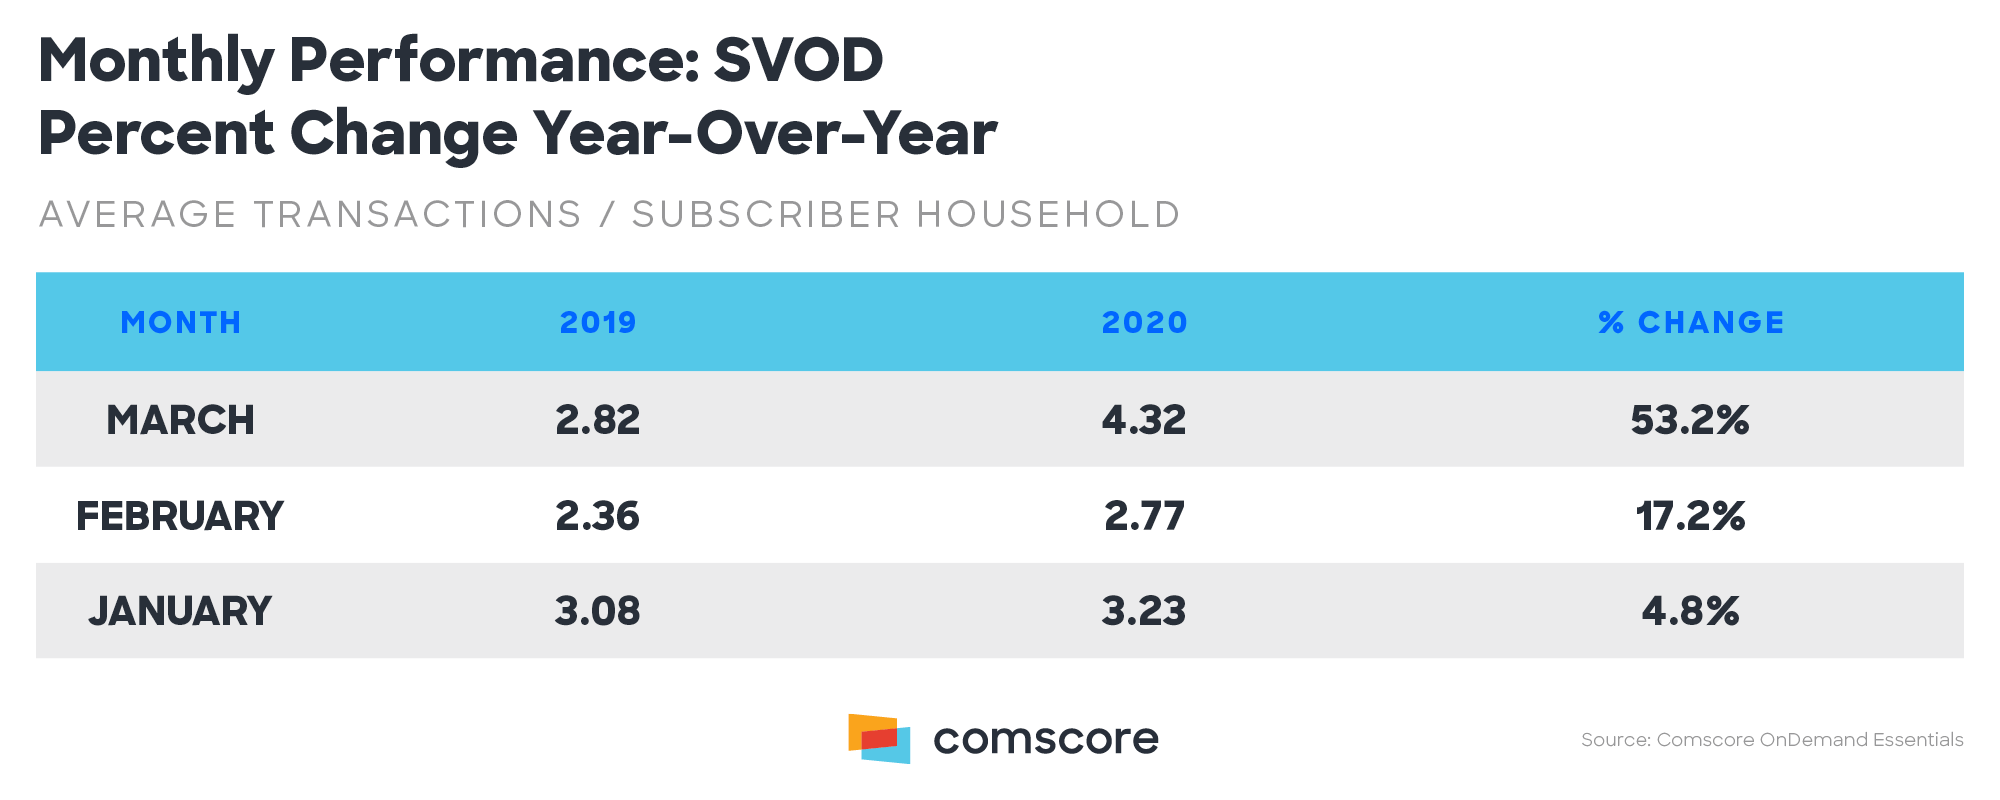 Monthly Performance All SVOD Percent Change Year over Year